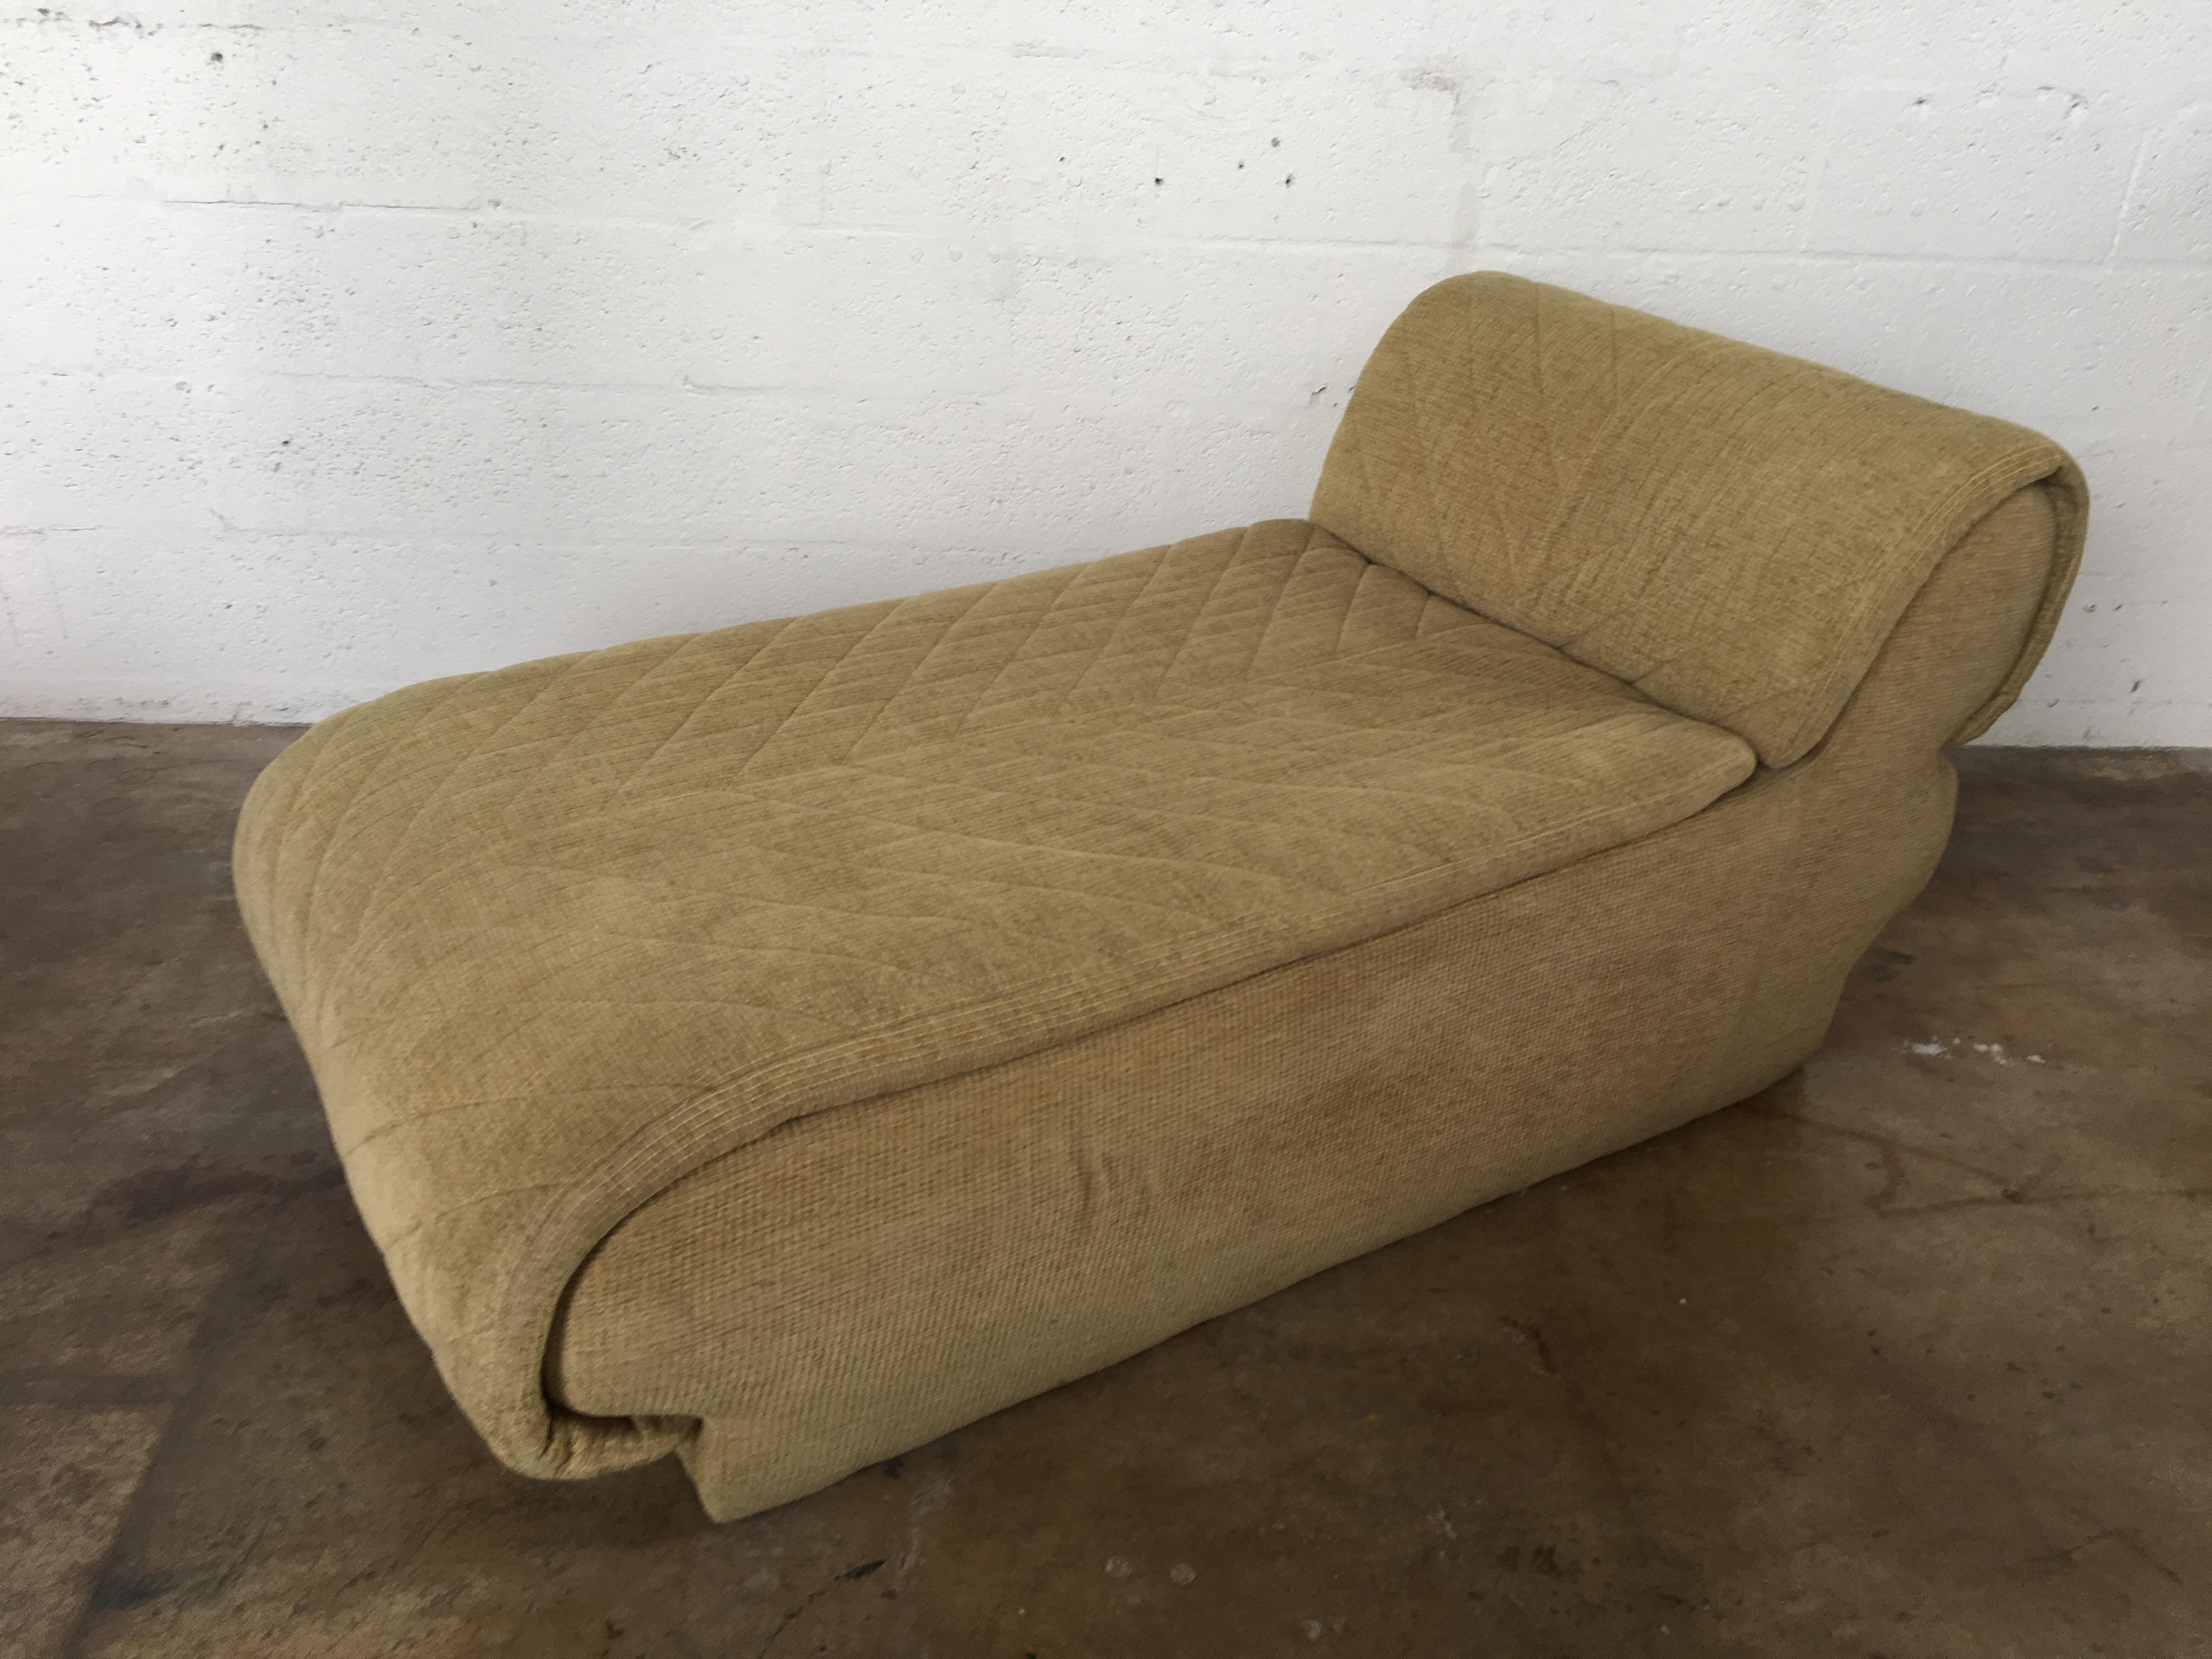 Vintage Vladimir Kagan for Preview Furniture Chaise Lounge - Image 2 of 9  sc 1 st  Chairish : chaise lounge vintage - Sectionals, Sofas & Couches